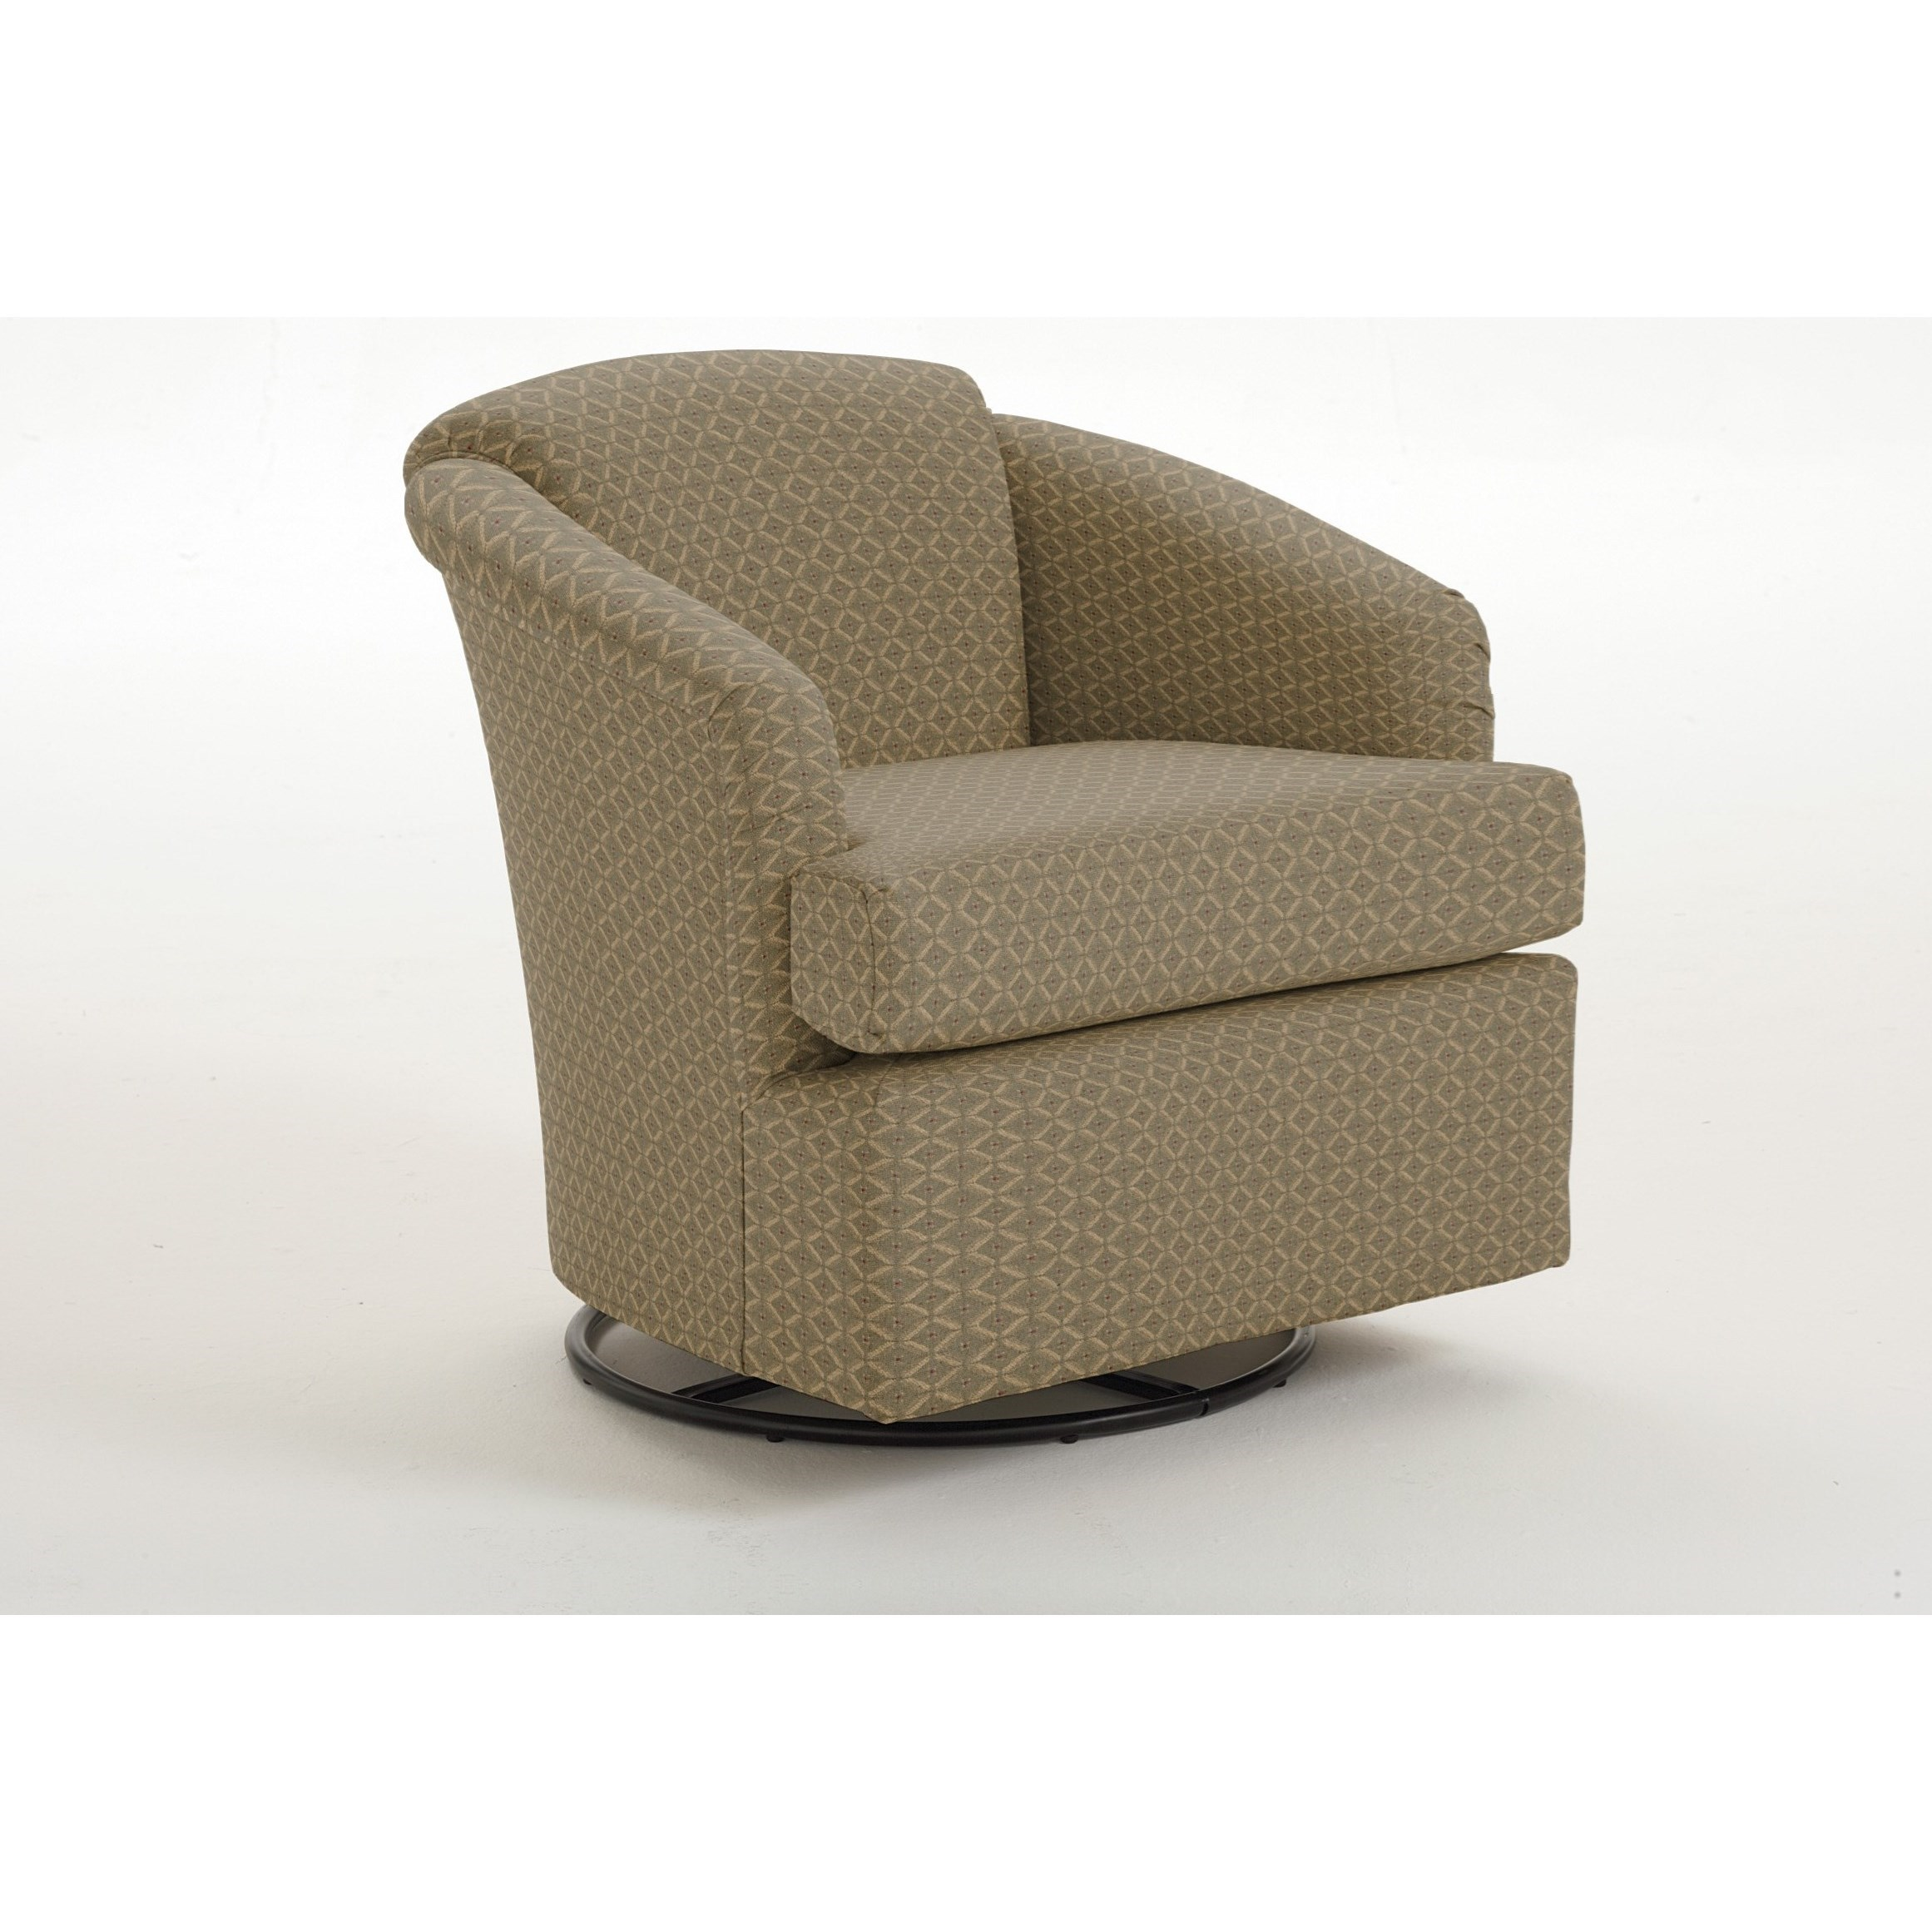 Cass Cass Swivel Glider by Best Home Furnishings at Stuckey Furniture